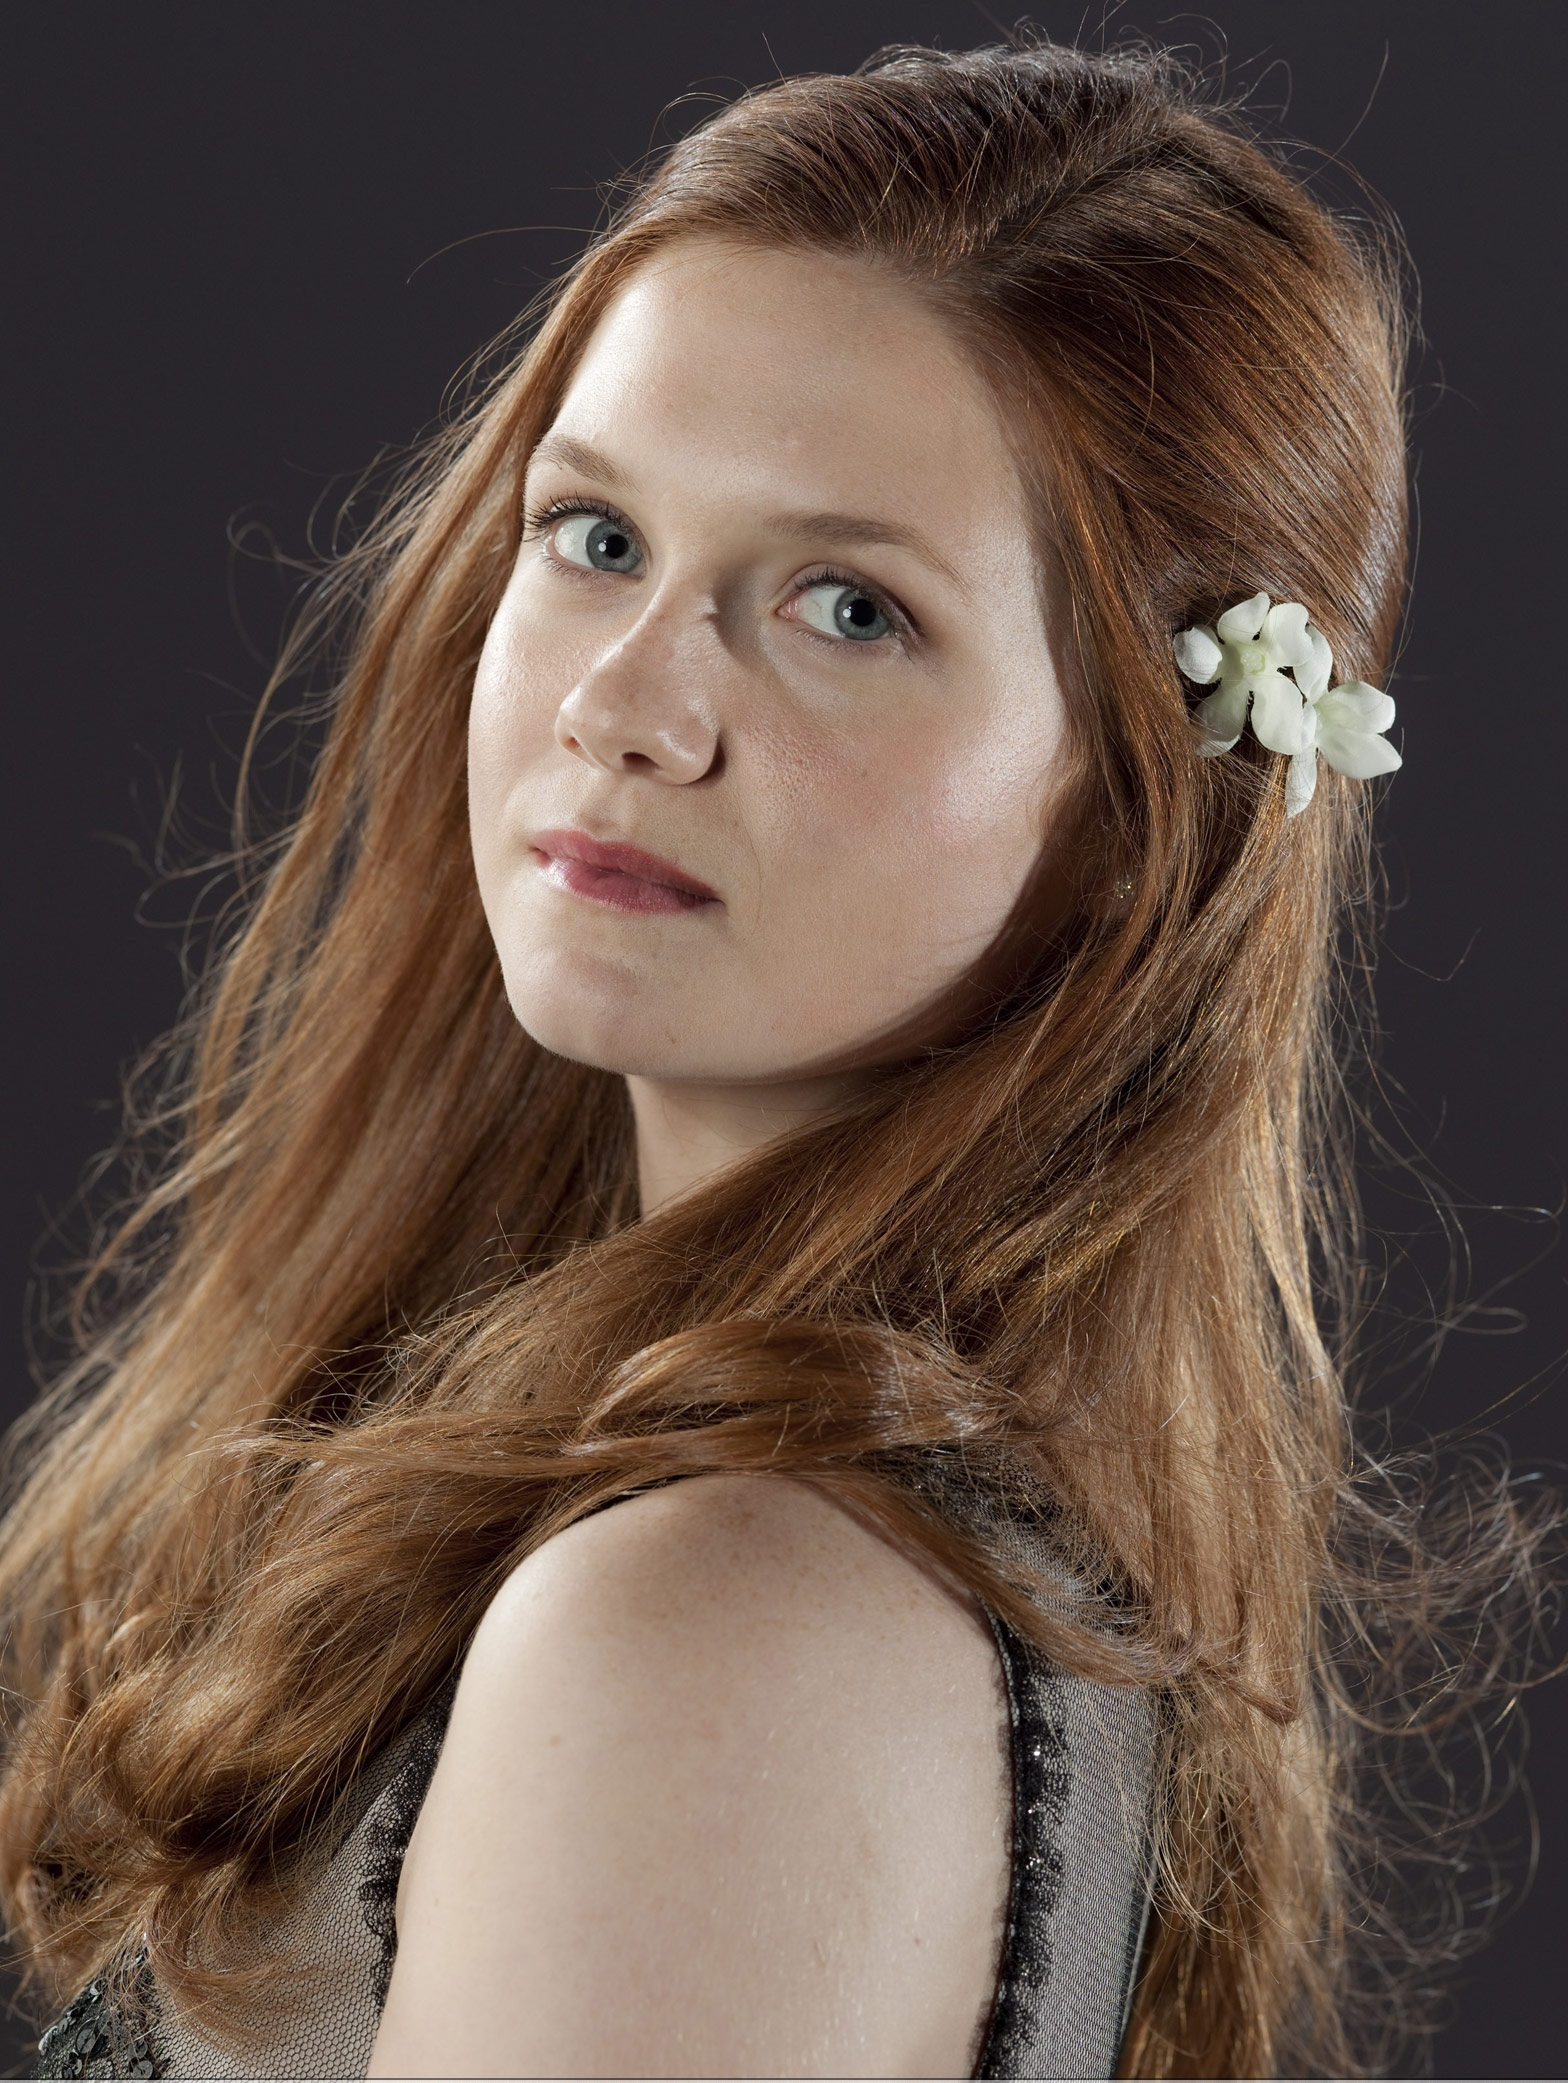 Personality ... MBTI Enneagram Ginny Weasley ... loading picture